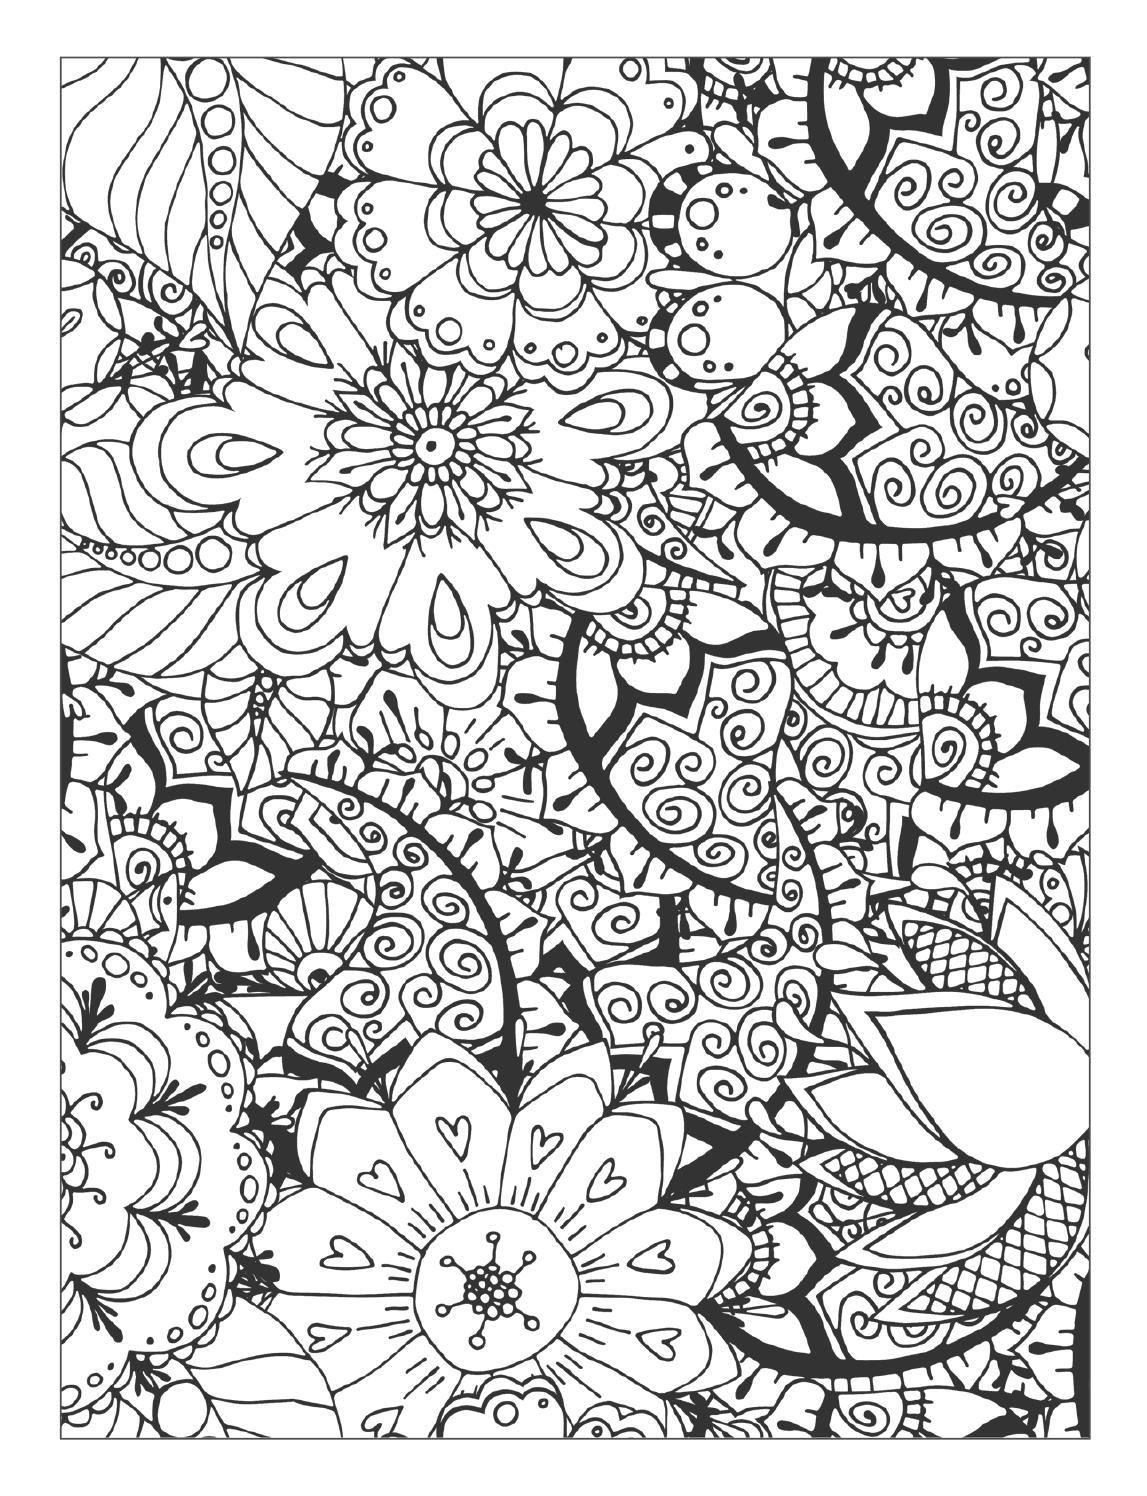 Beautiful Flowers Coloring Pages Beautiful Flowers Detailed Floral Designs Coloring Book